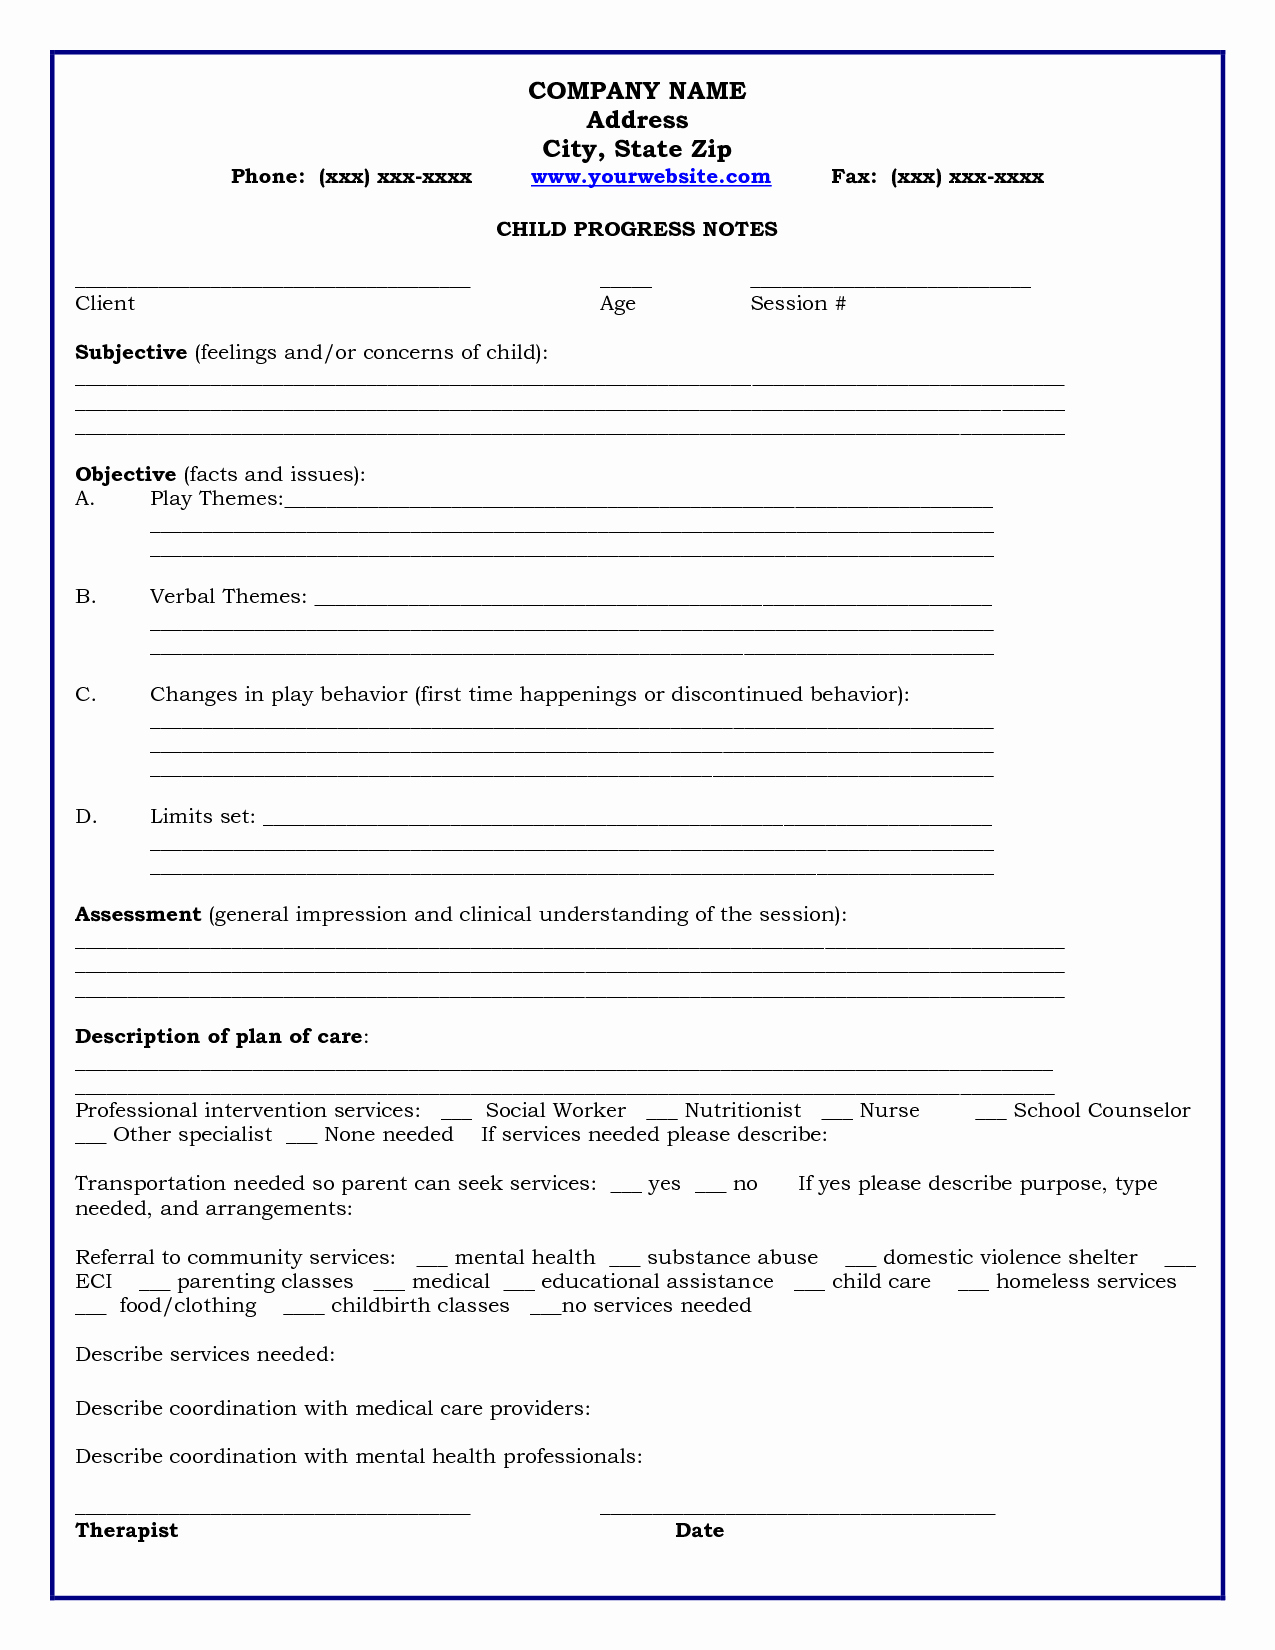 Psychotherapy Note Template Word Lovely Psychotherapy Progress Notes Template Google Search